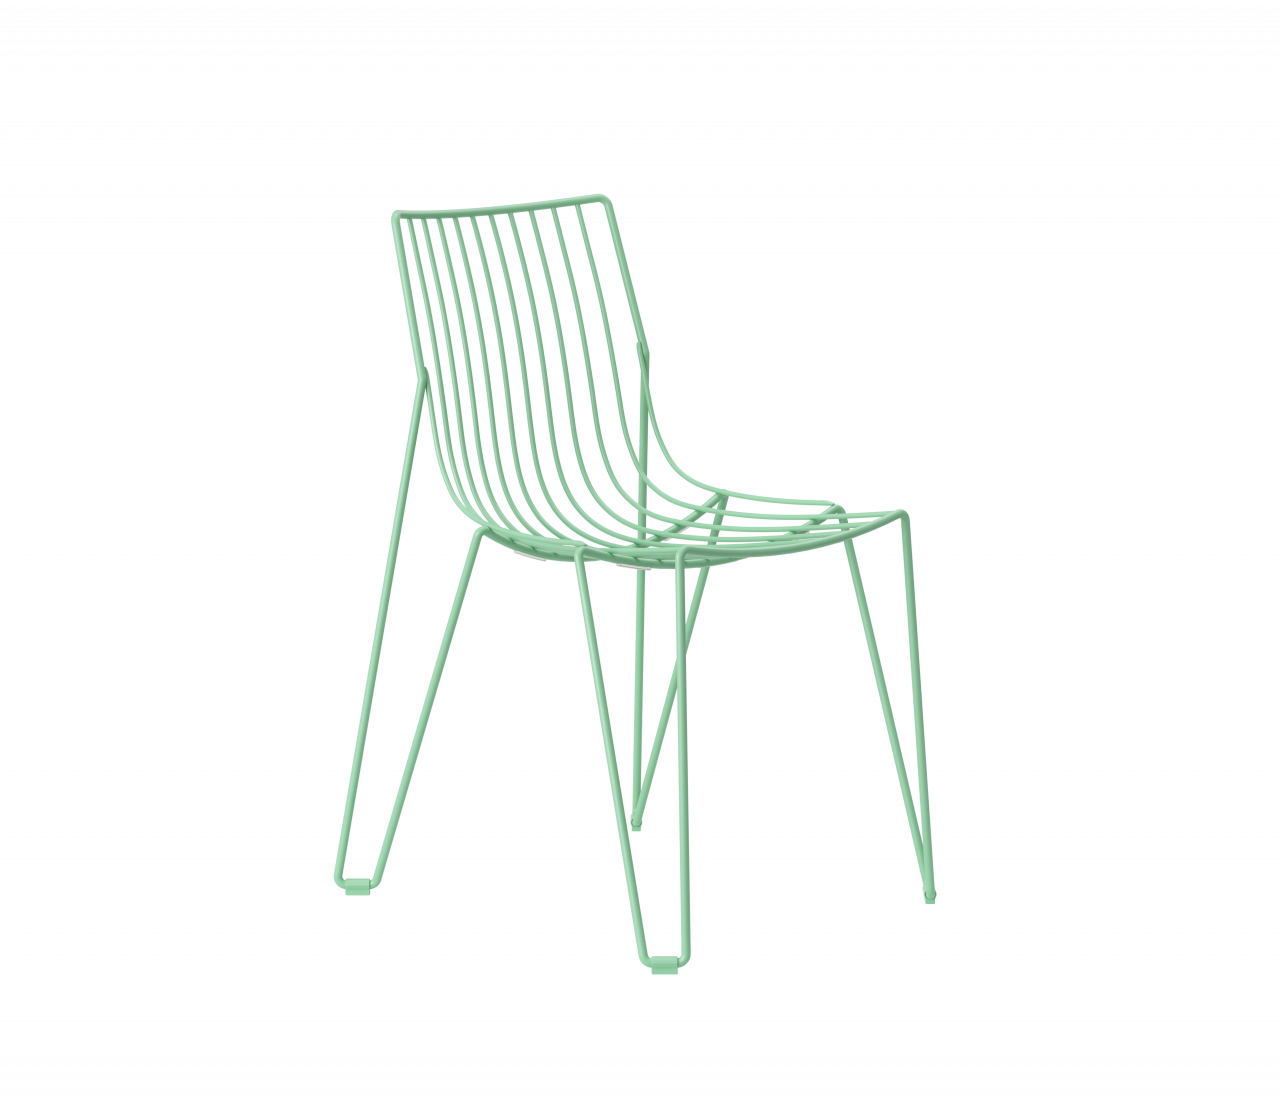 green wire chair on white background